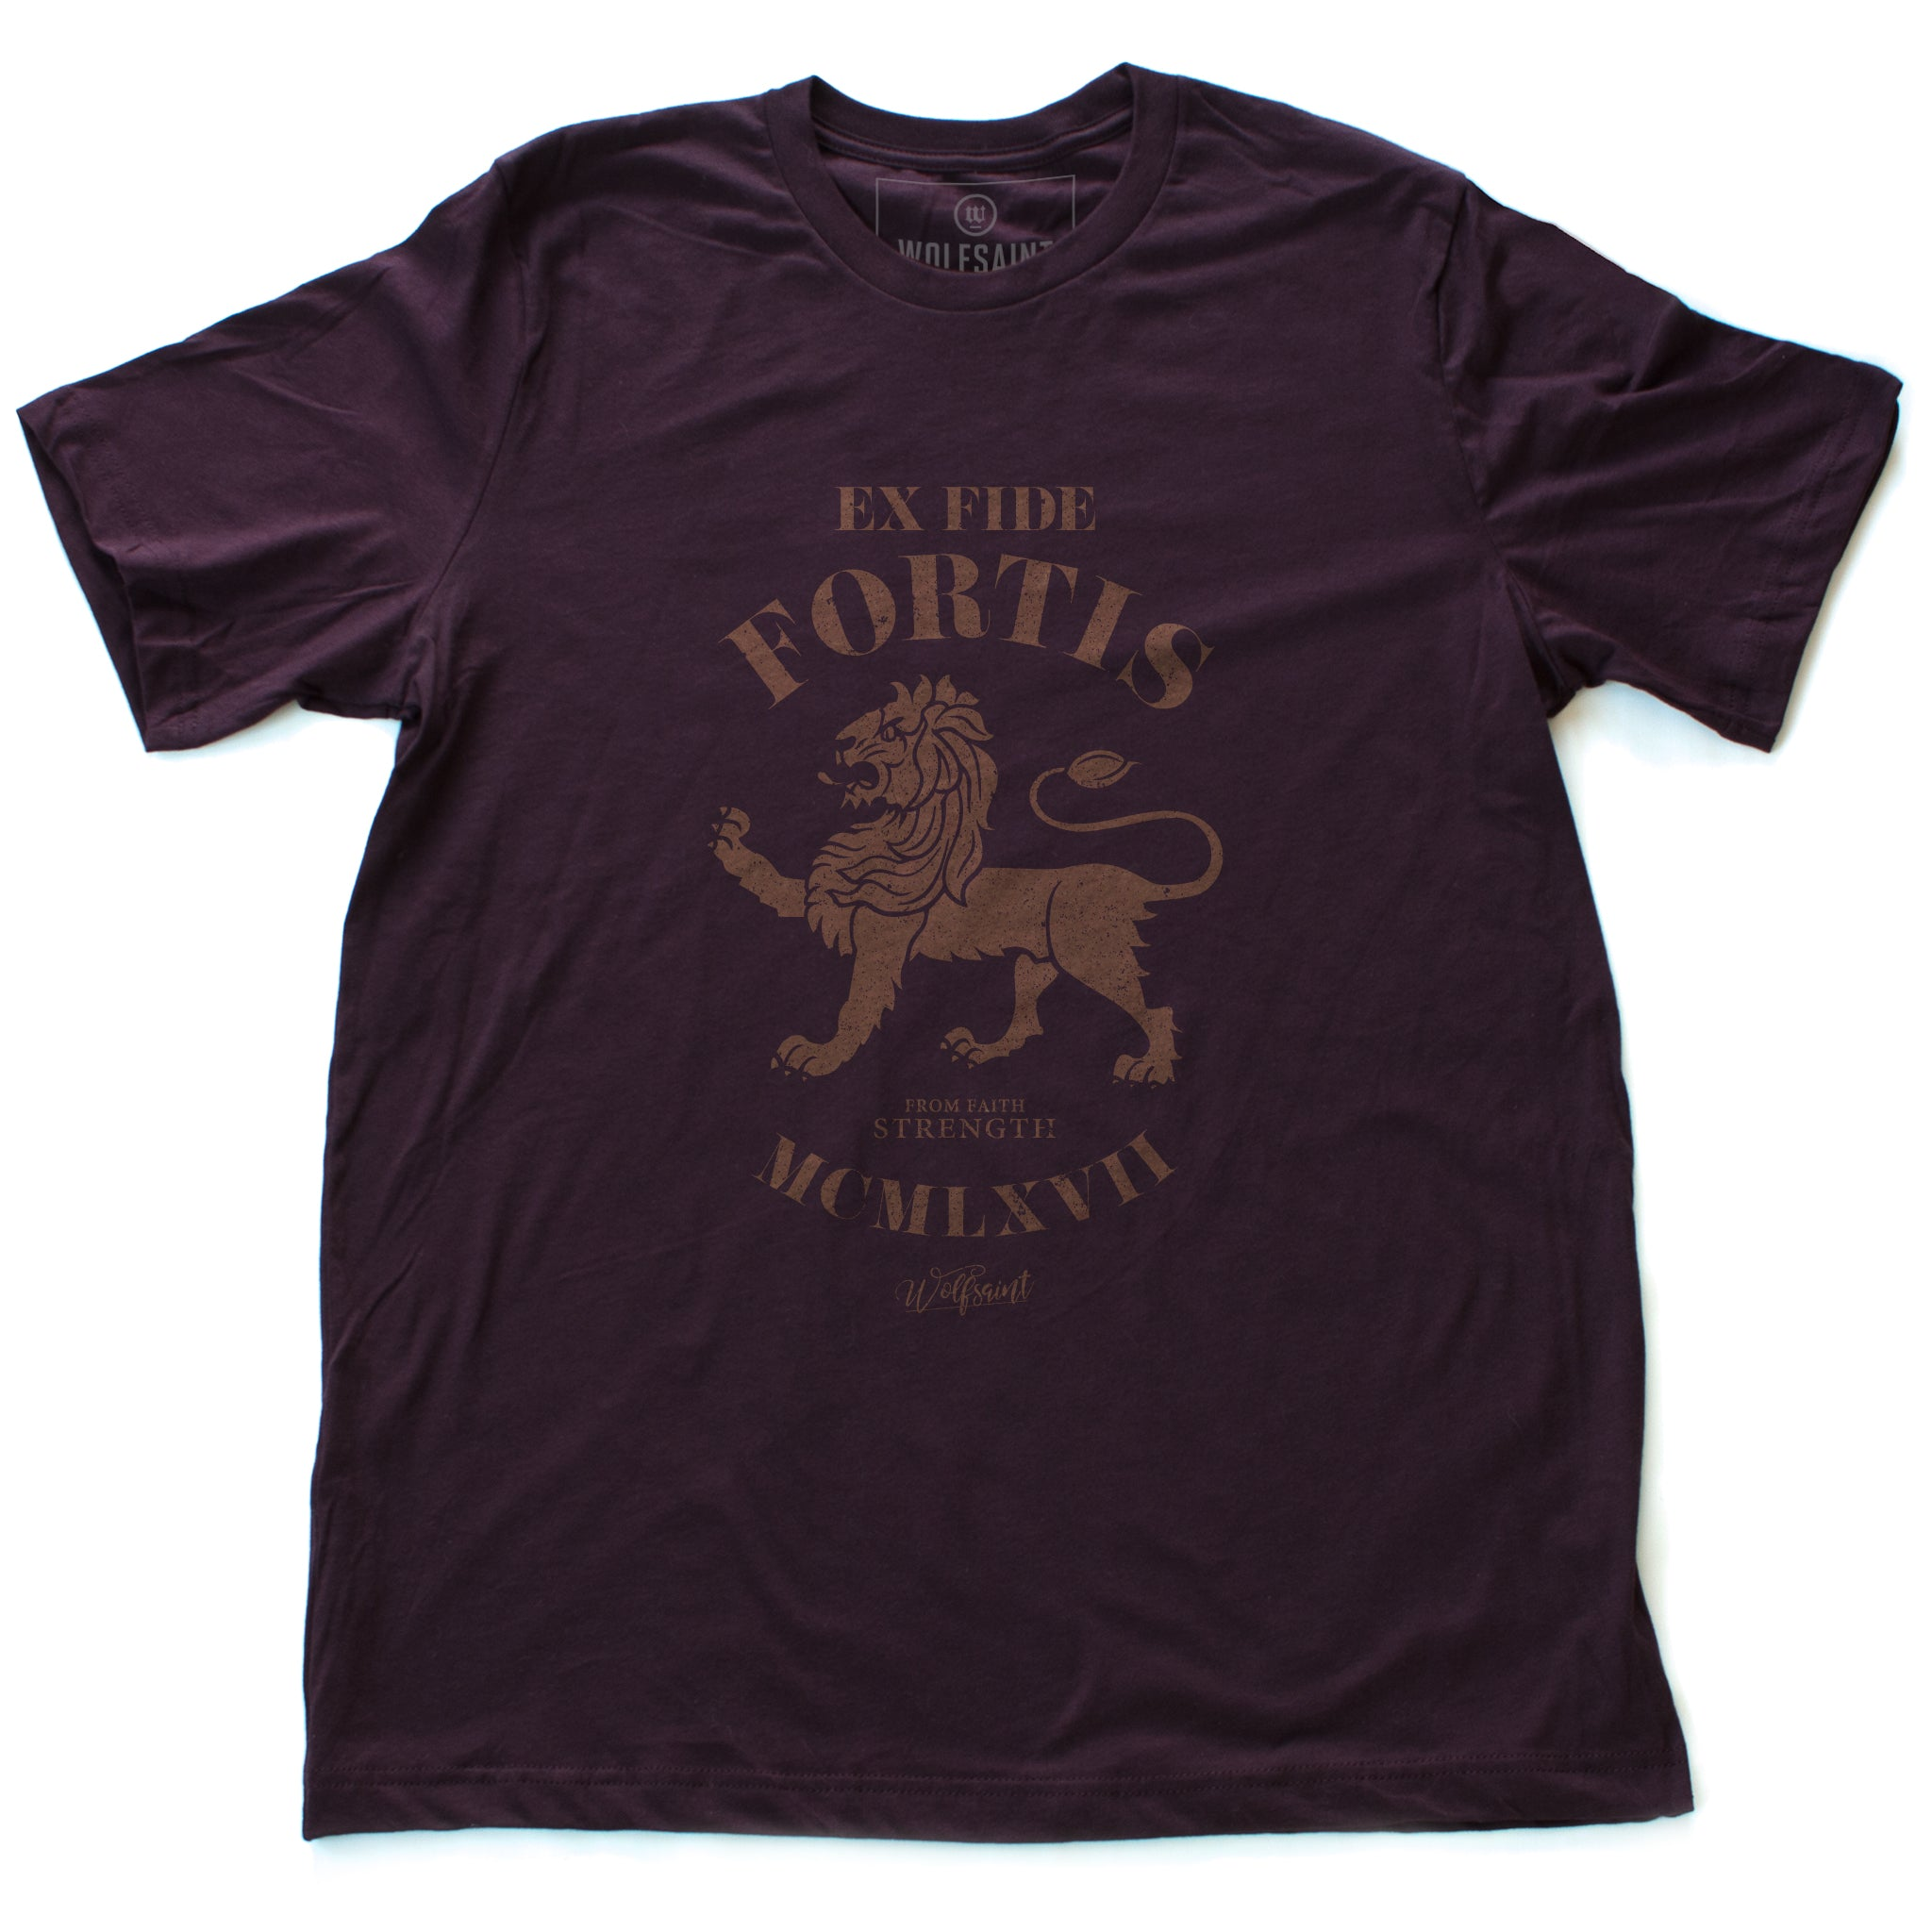 "A vintage-inspired classic oxblood retro t-shirt featuring a strong graphic of a lion, with the Latin phrase meaning ""Out of faith, strength."" By wolfsaint.net"